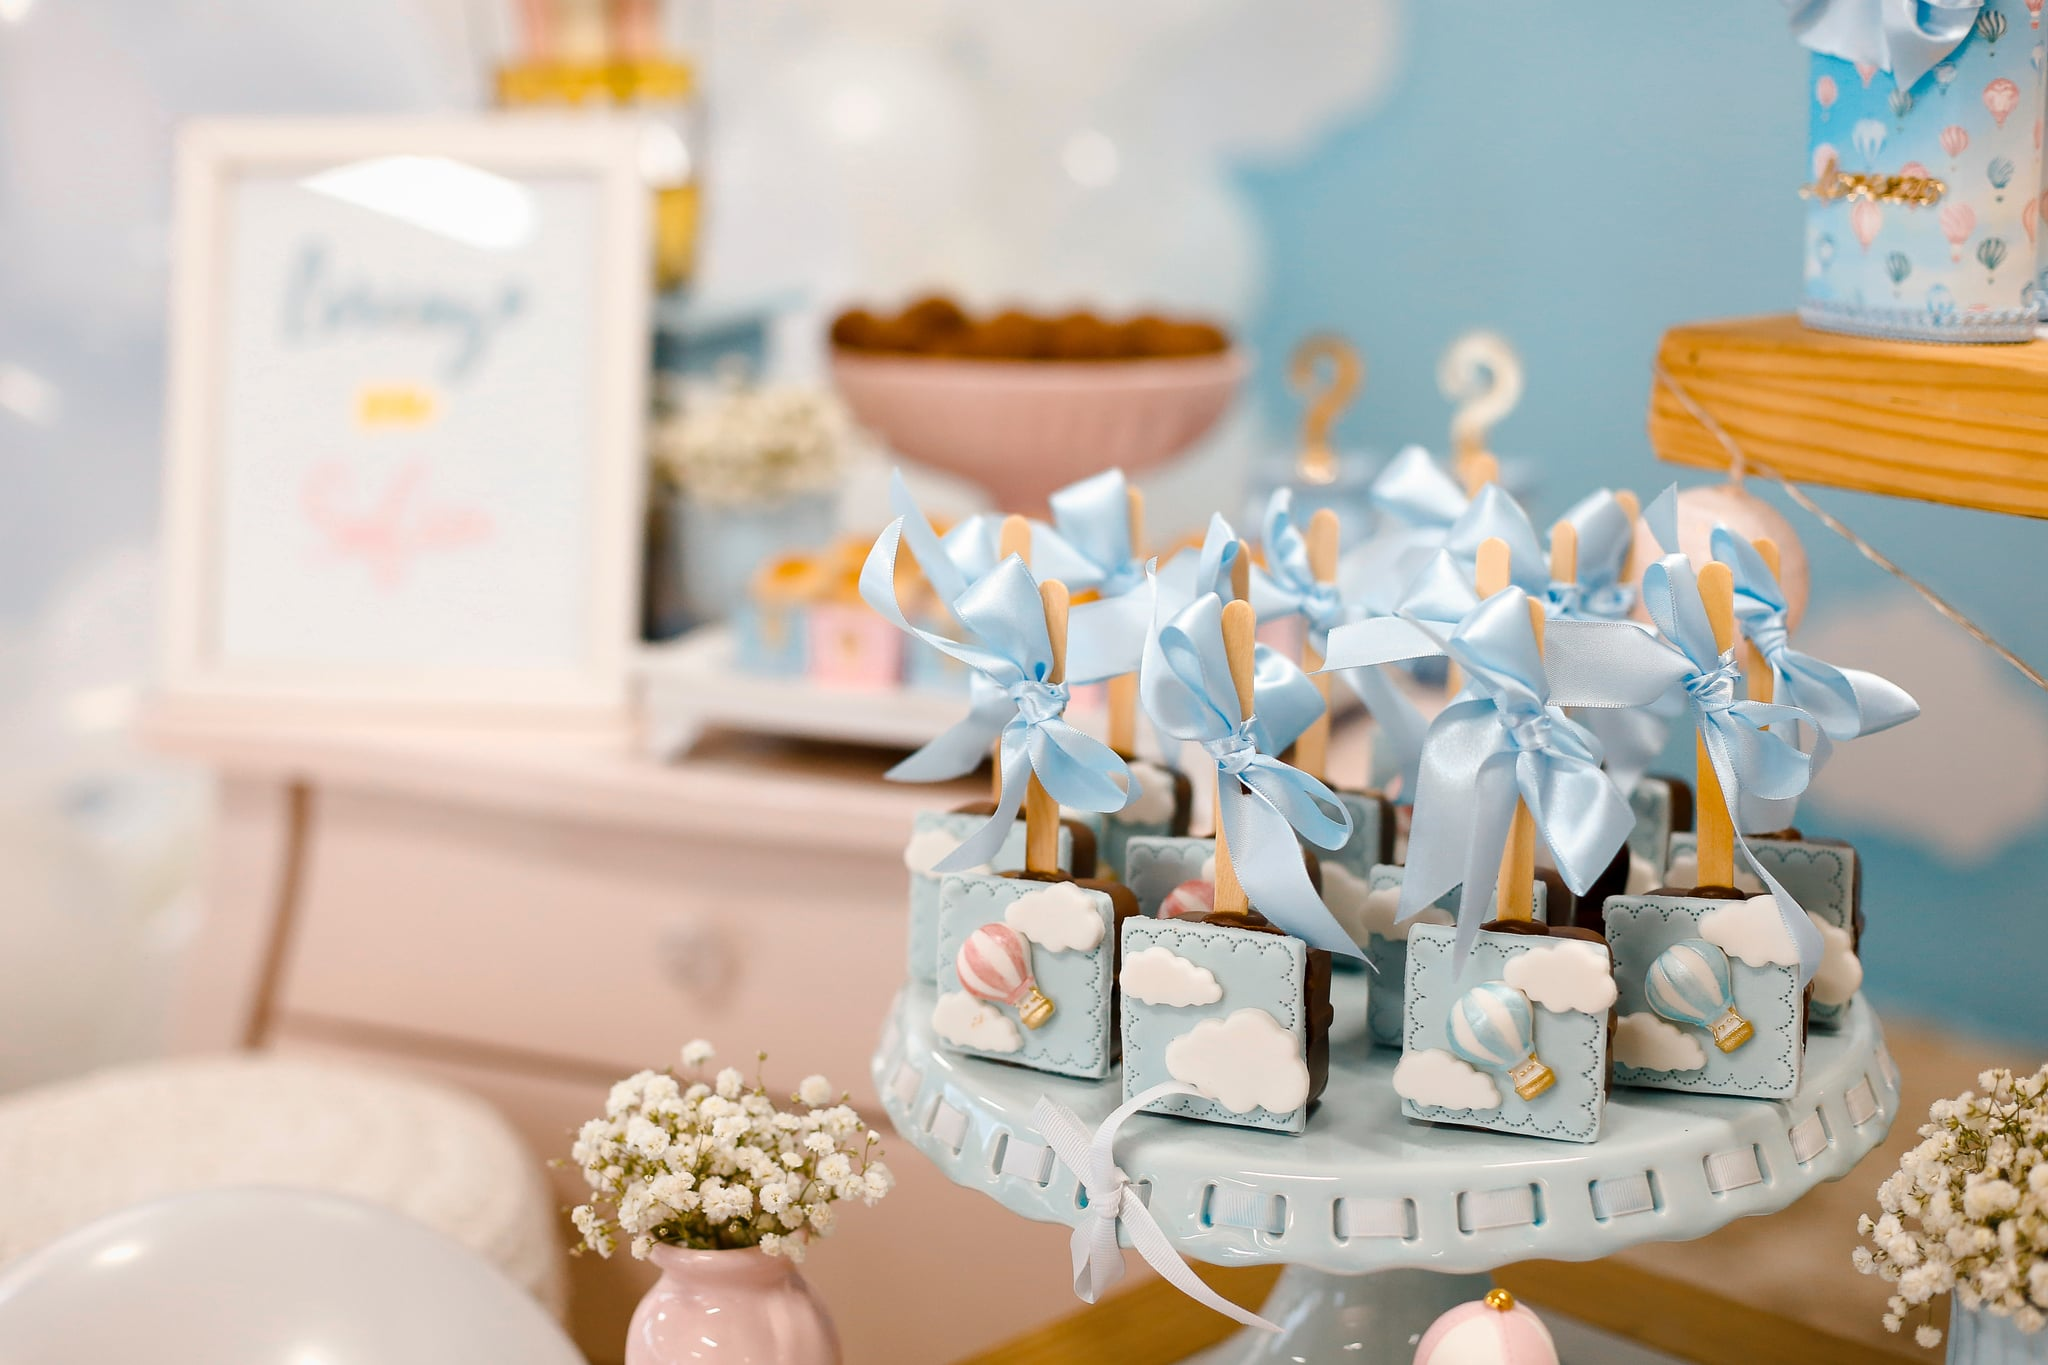 Why I'm Glad I Didn't Have a Baby Shower